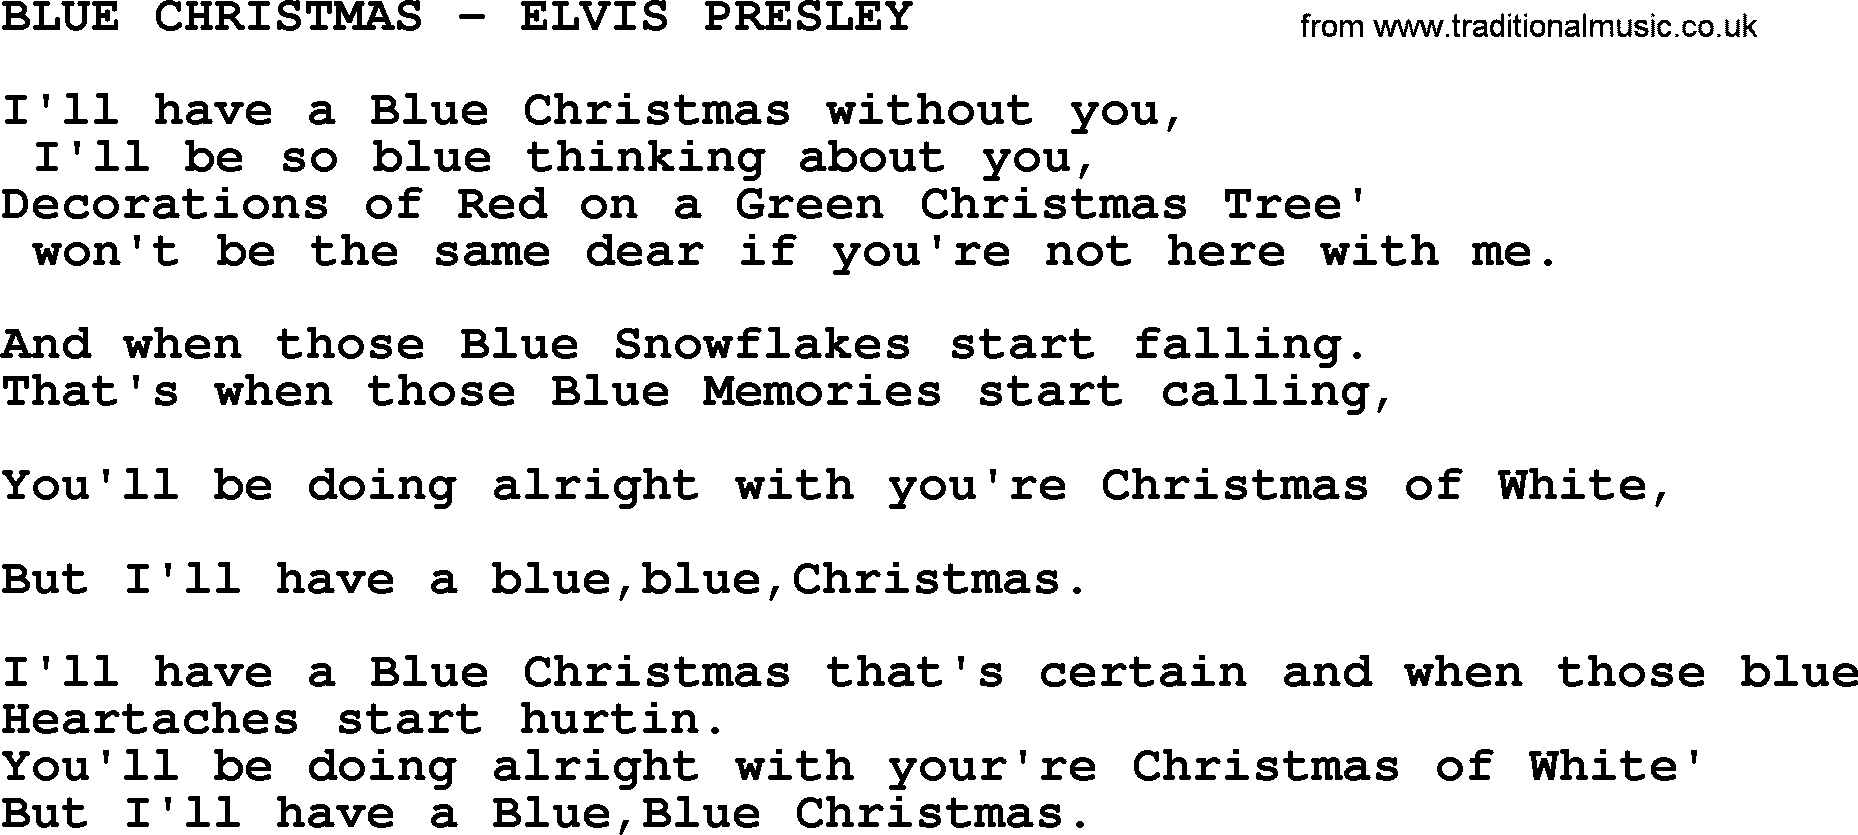 Blue Christmas Chords Blue Christmas Elvis Presley Txt Elvis Presley Lyrics And Chords